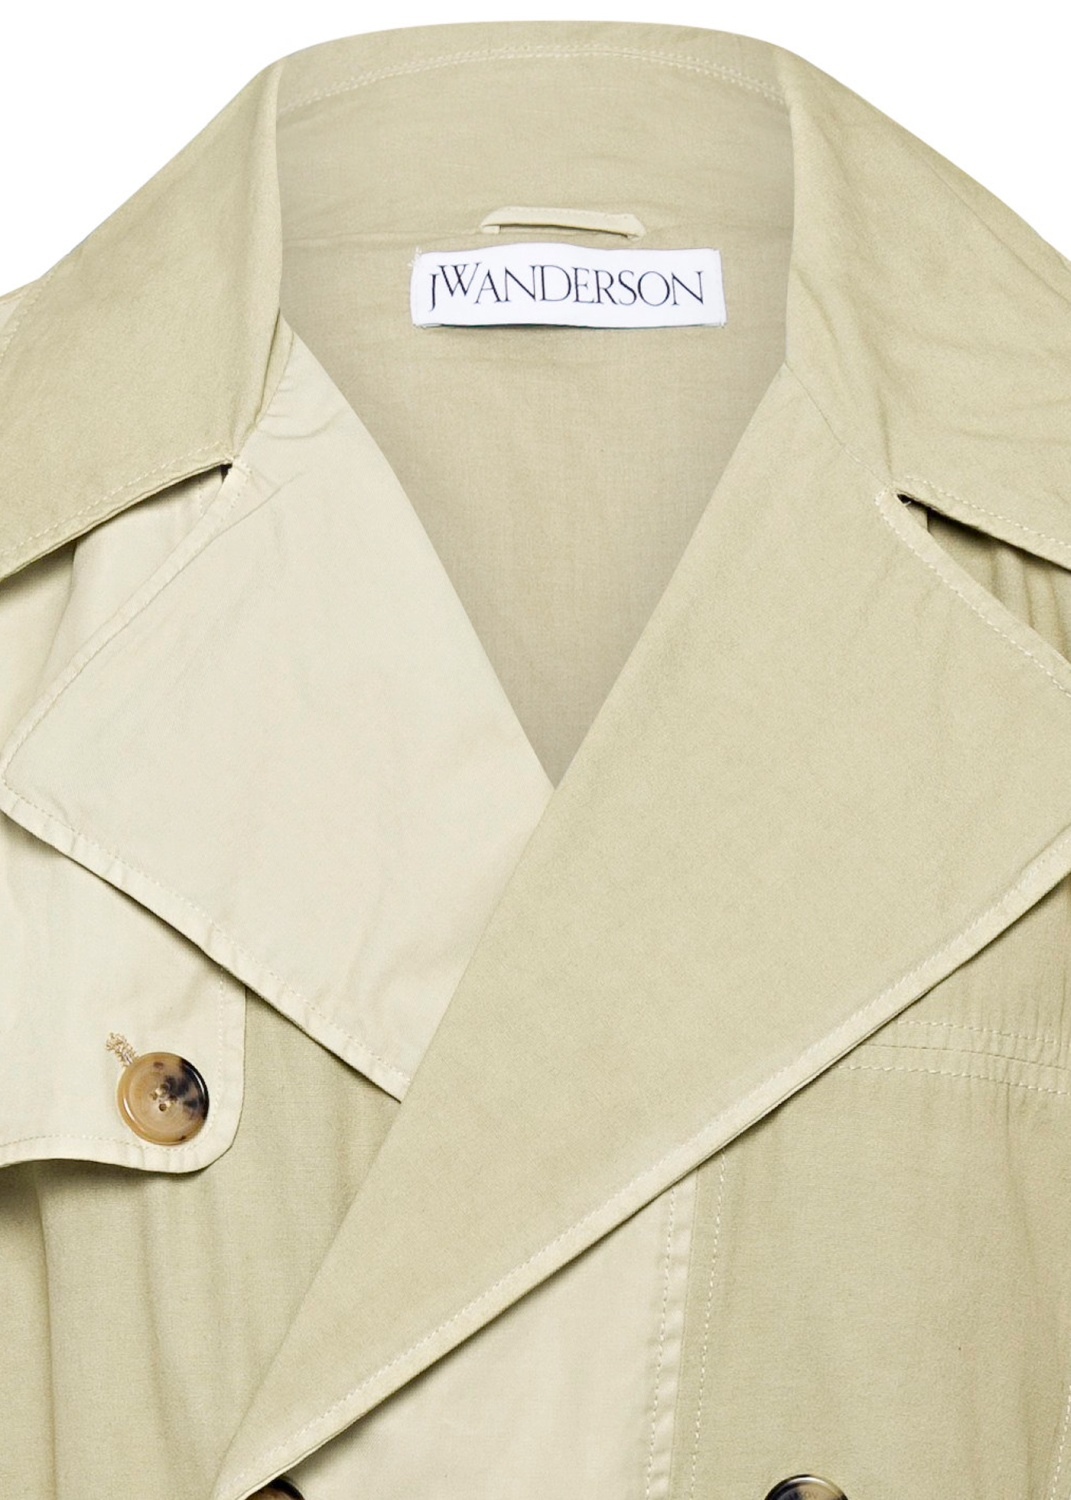 Trench Coat image number 2